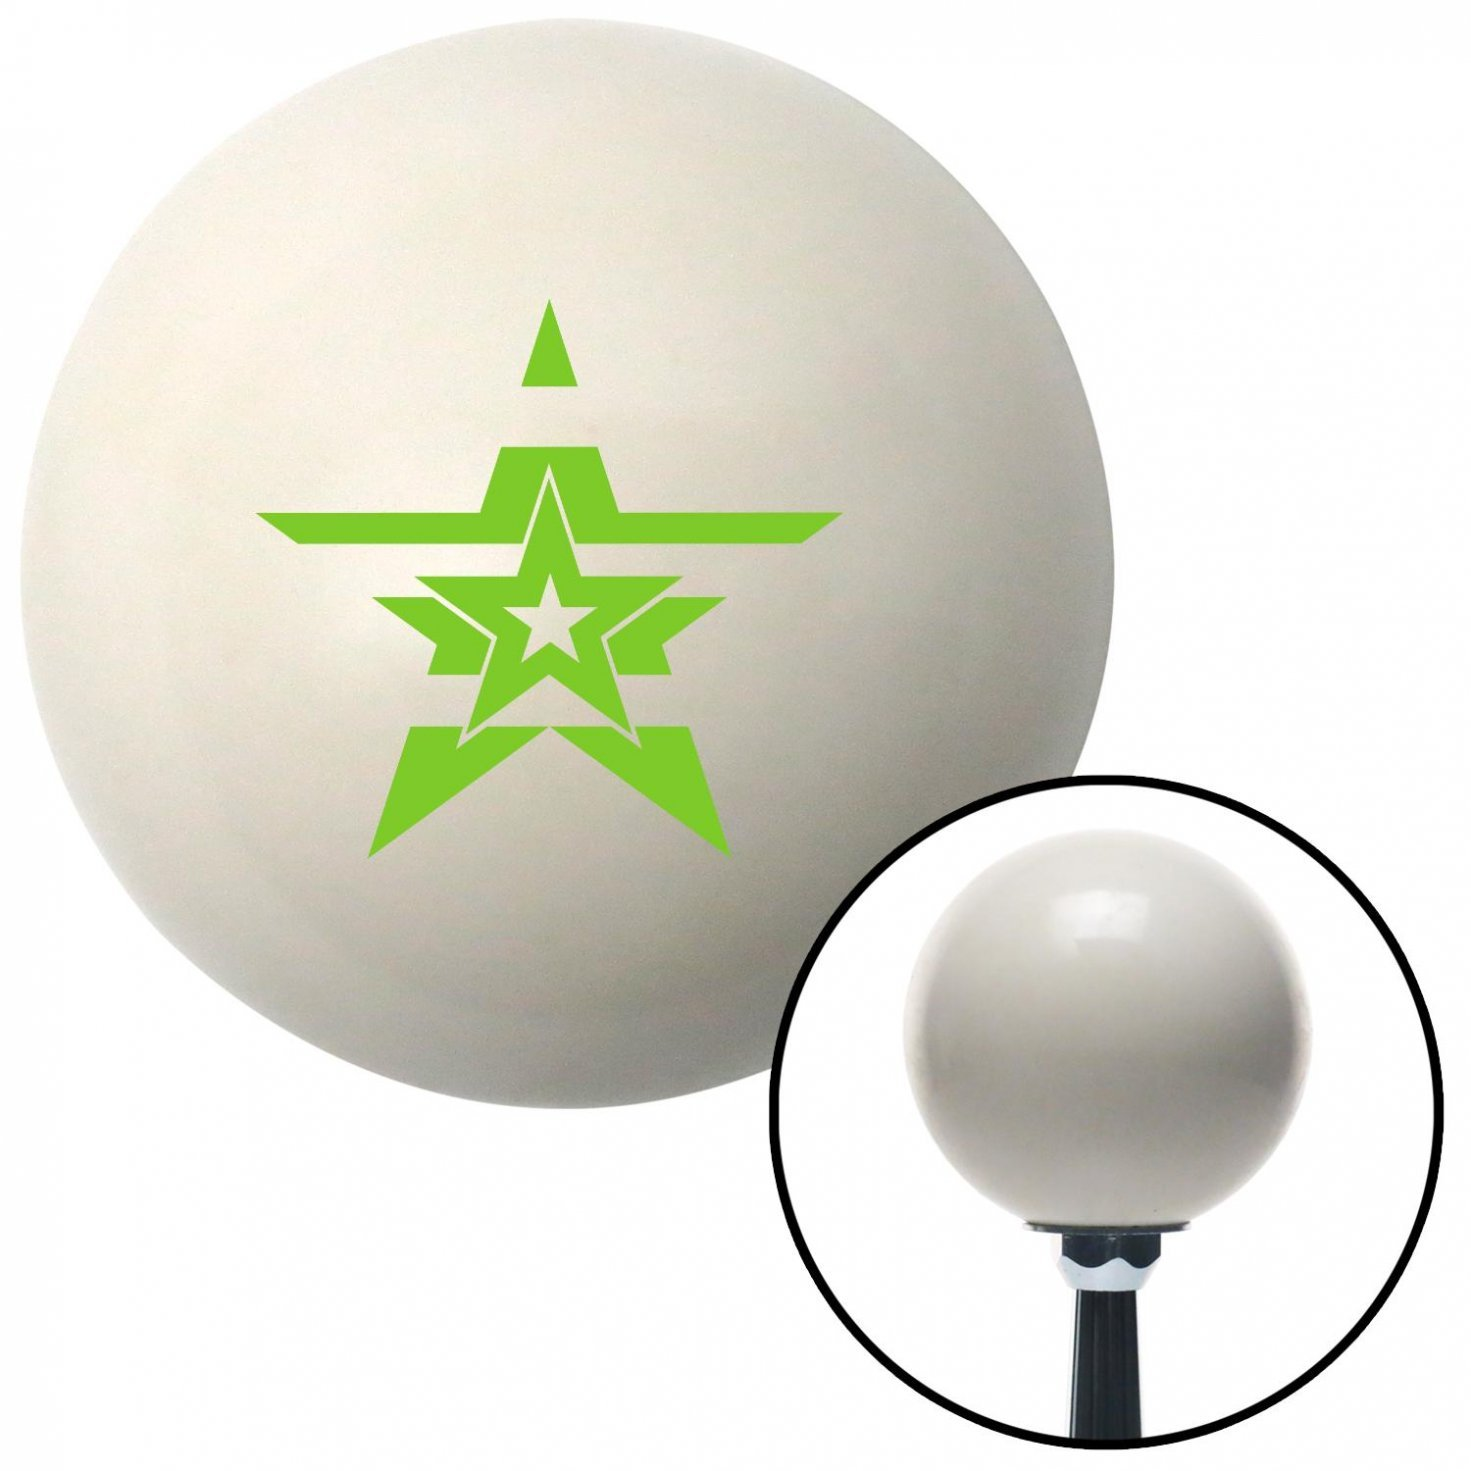 American Shifter 41011 Ivory Shift Knob with 16mm x 1.5 Insert Green Stars with Stripes